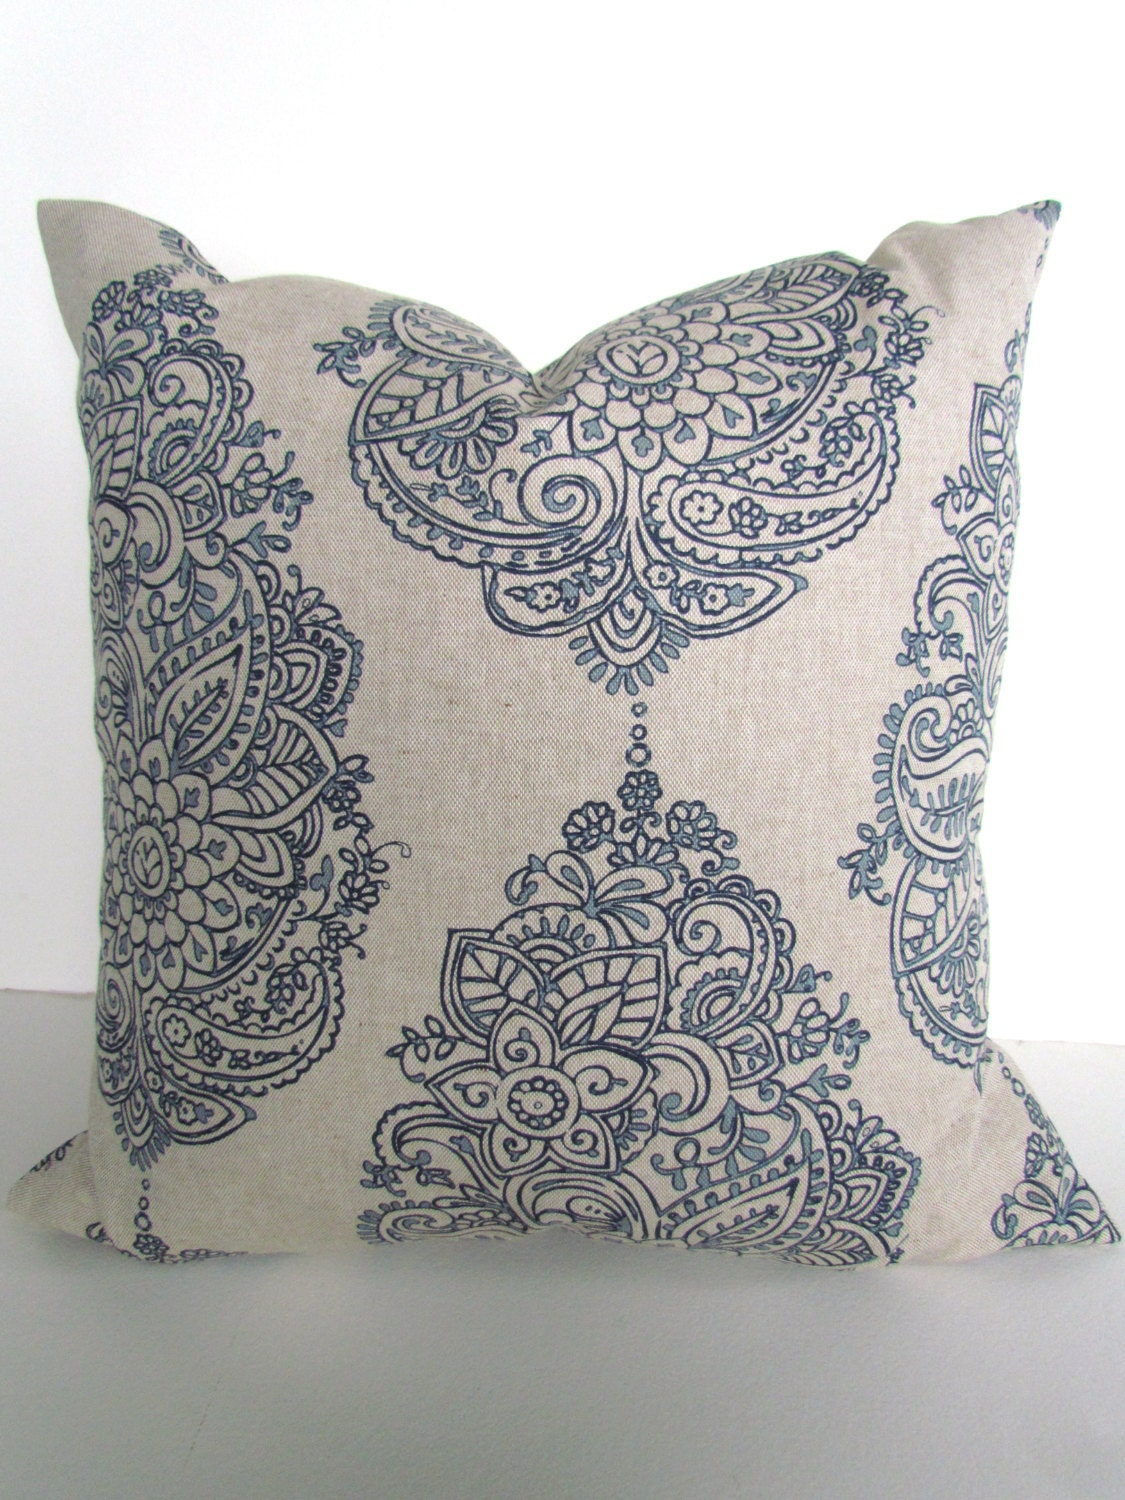 Decorative Pillows Navy Blue : BLUE PILLOWS Navy Blue Throw Pillows Dark Blue Pillow Covers